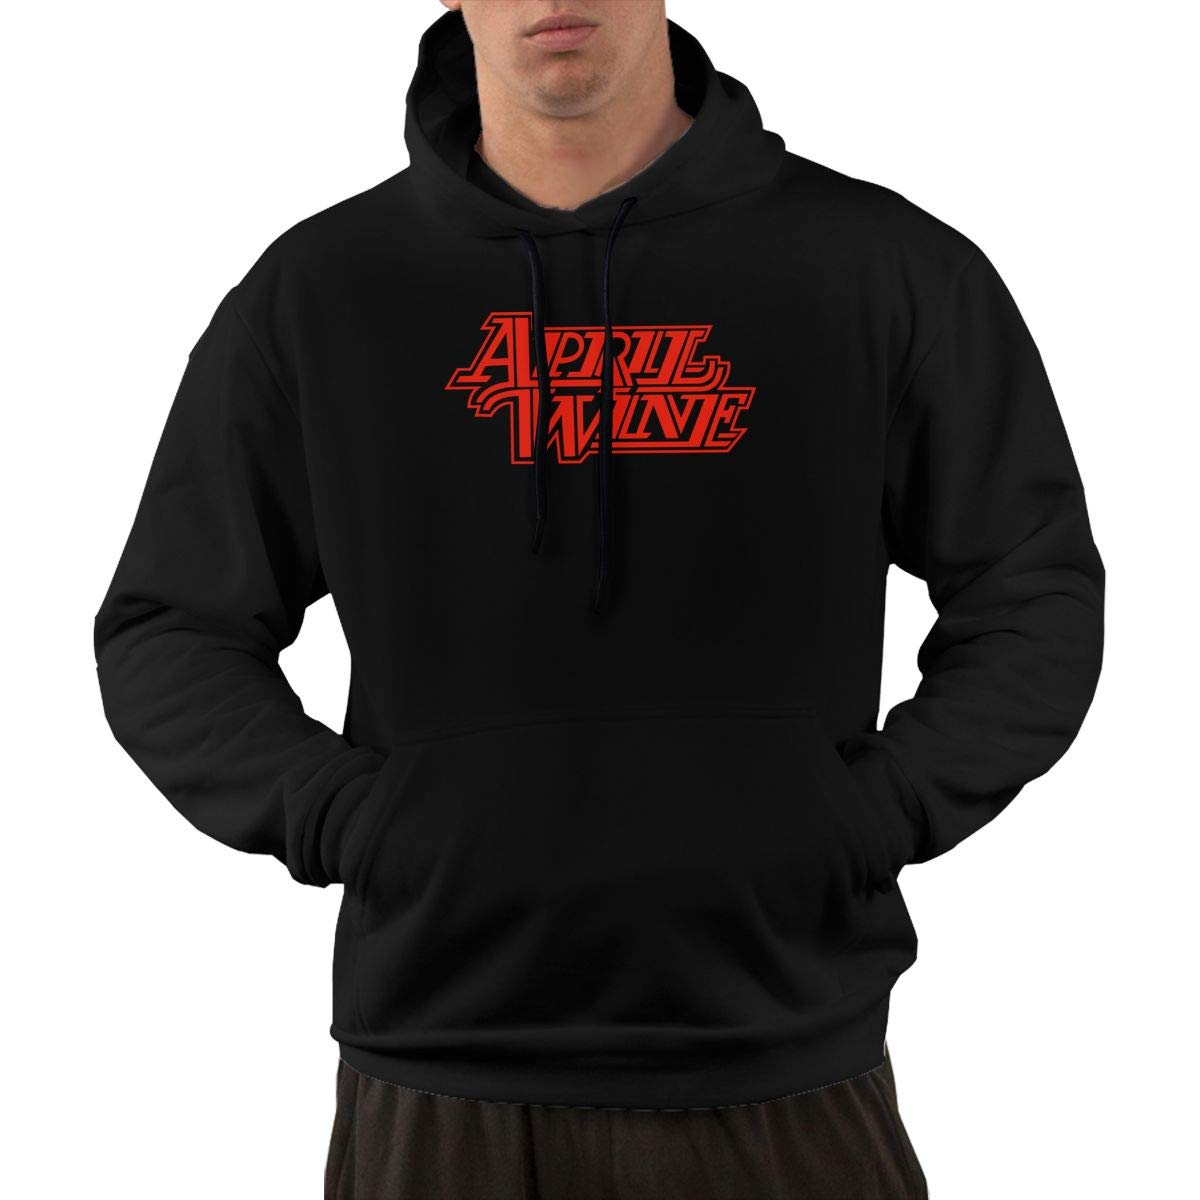 S Pullover Classic Black Print April Wine Hooded Shirts With Pocket L